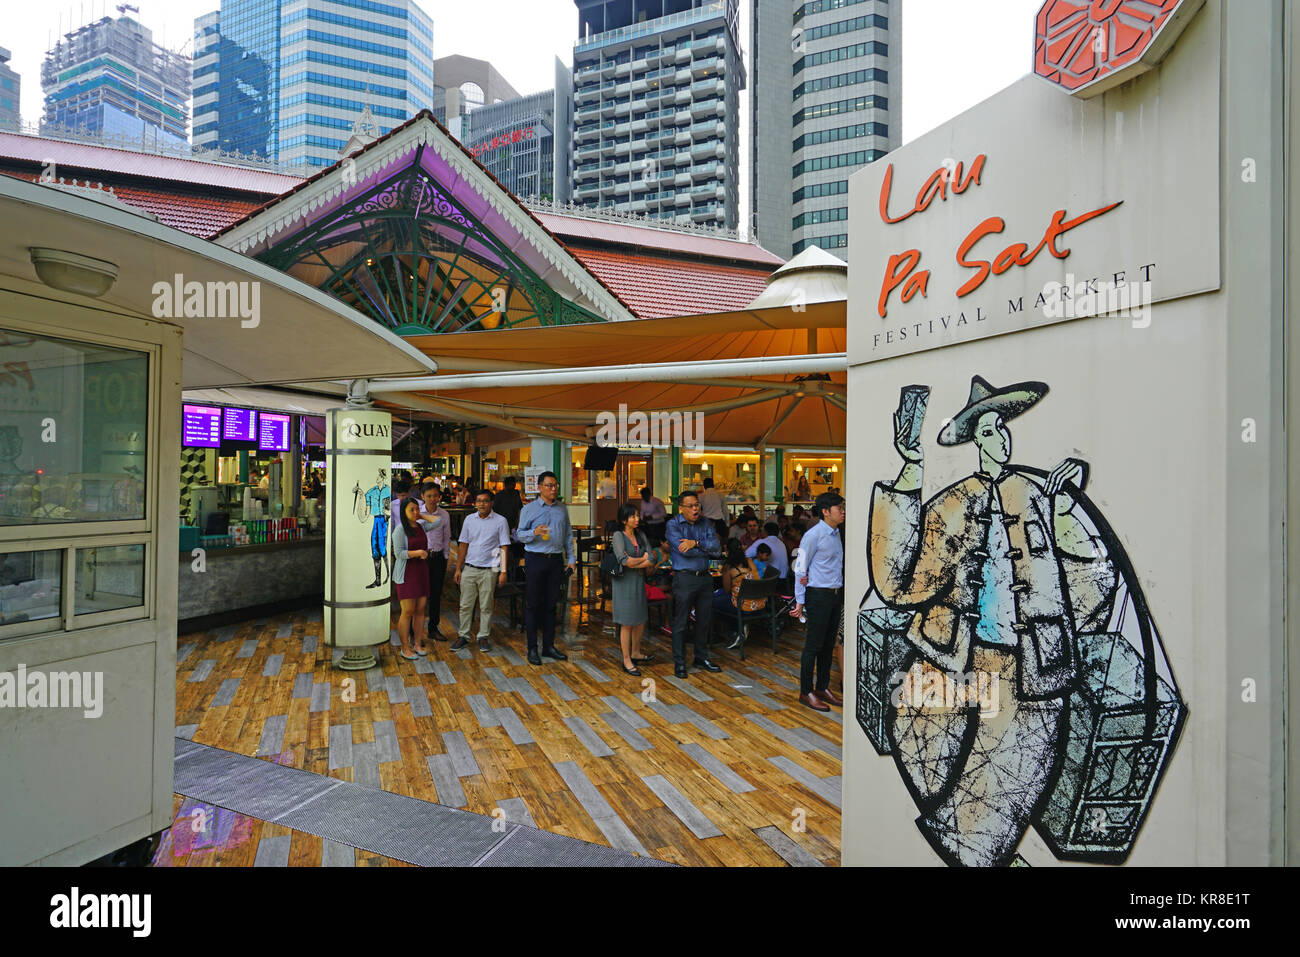 The Lau Pa Sat festival market (Telok Ayer), a historic Victorian cast-iron market building used as a popular food - Stock Image